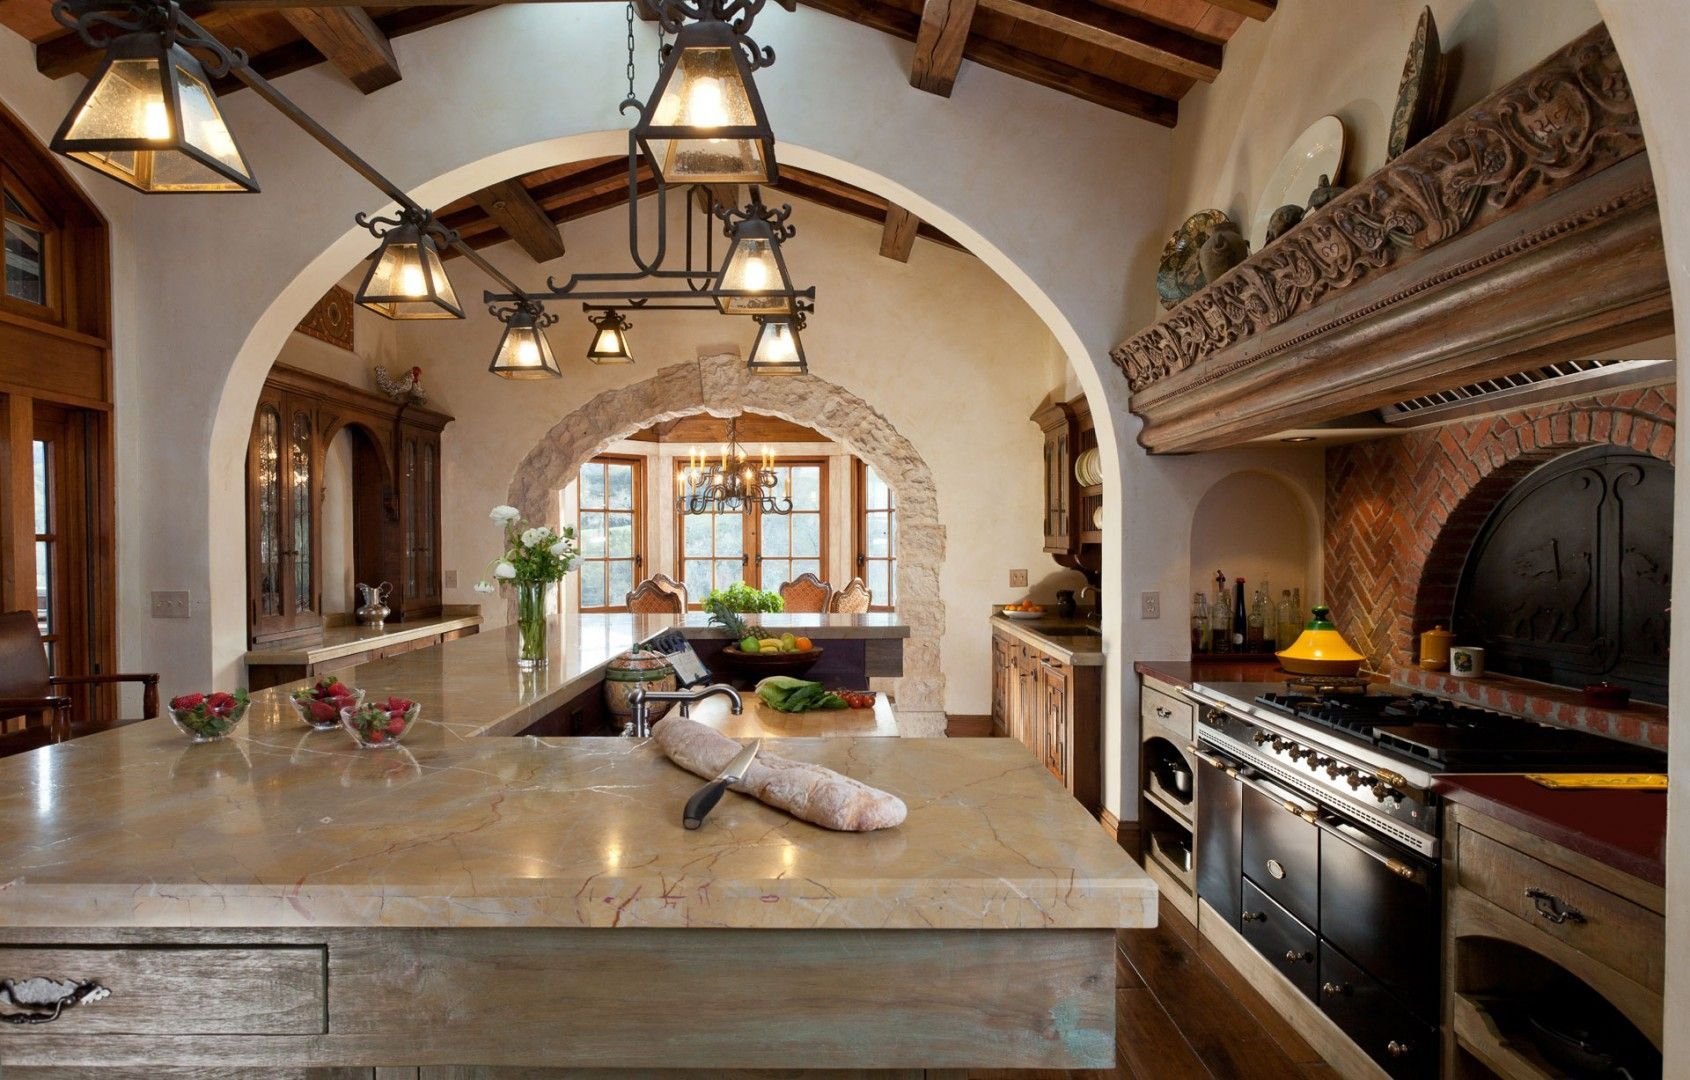 Interior Design Rustic Colonial Style Kitchen With Exposed Beam And White Floor Wooden Wall Shelveswhite Wallclassic Chandeliers Modern